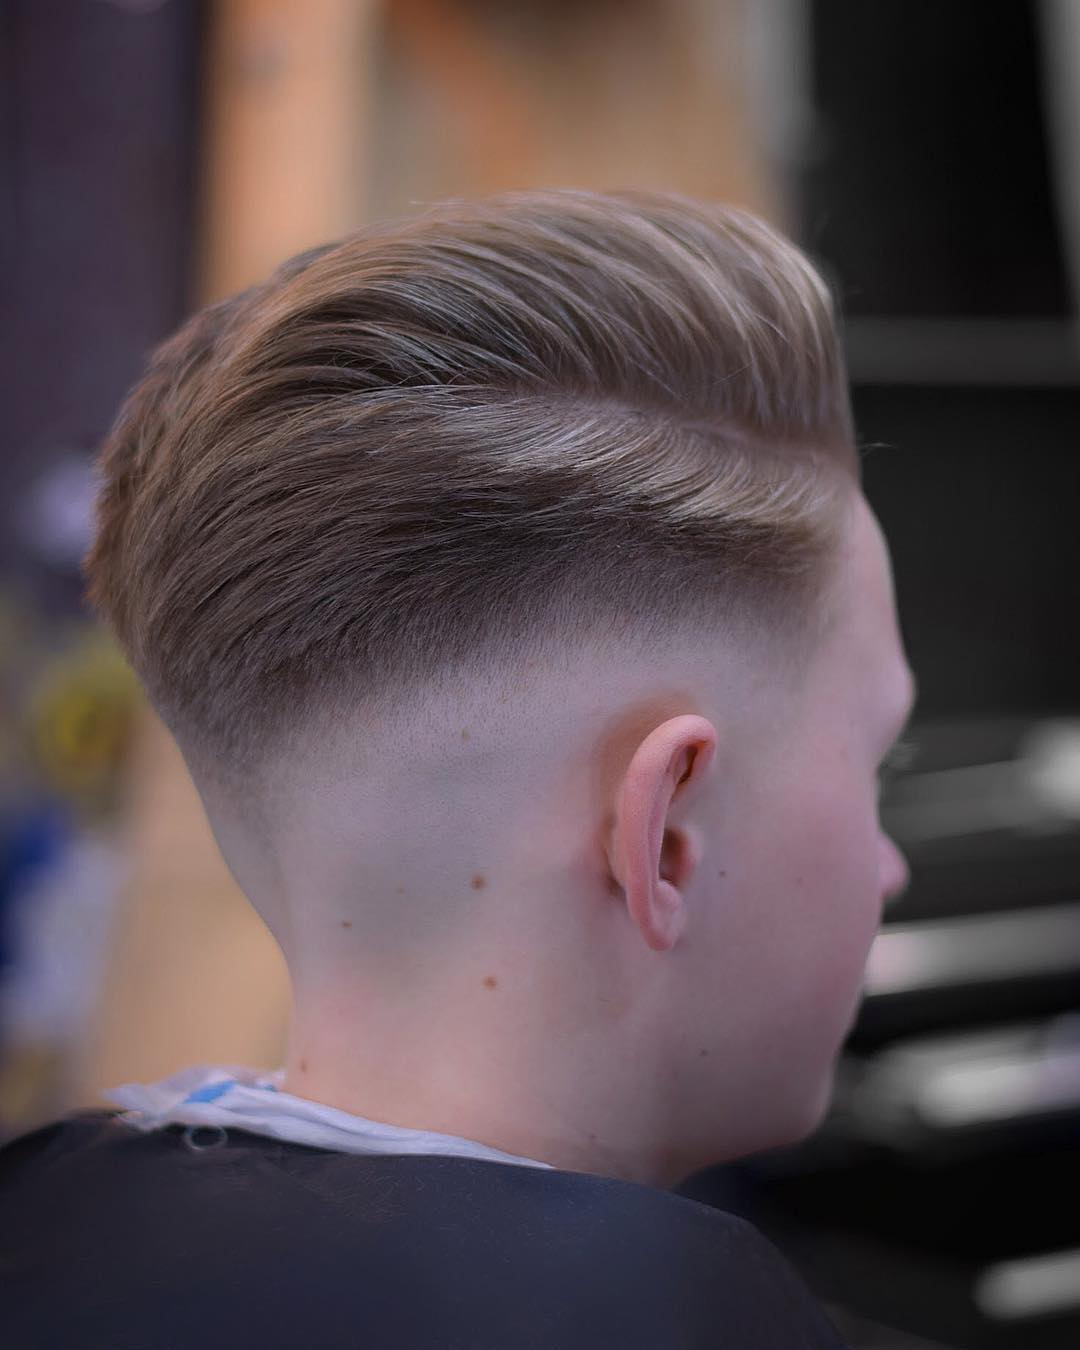 jarredsbarbers sweep back pomp fade latest mens hairstyles 2018